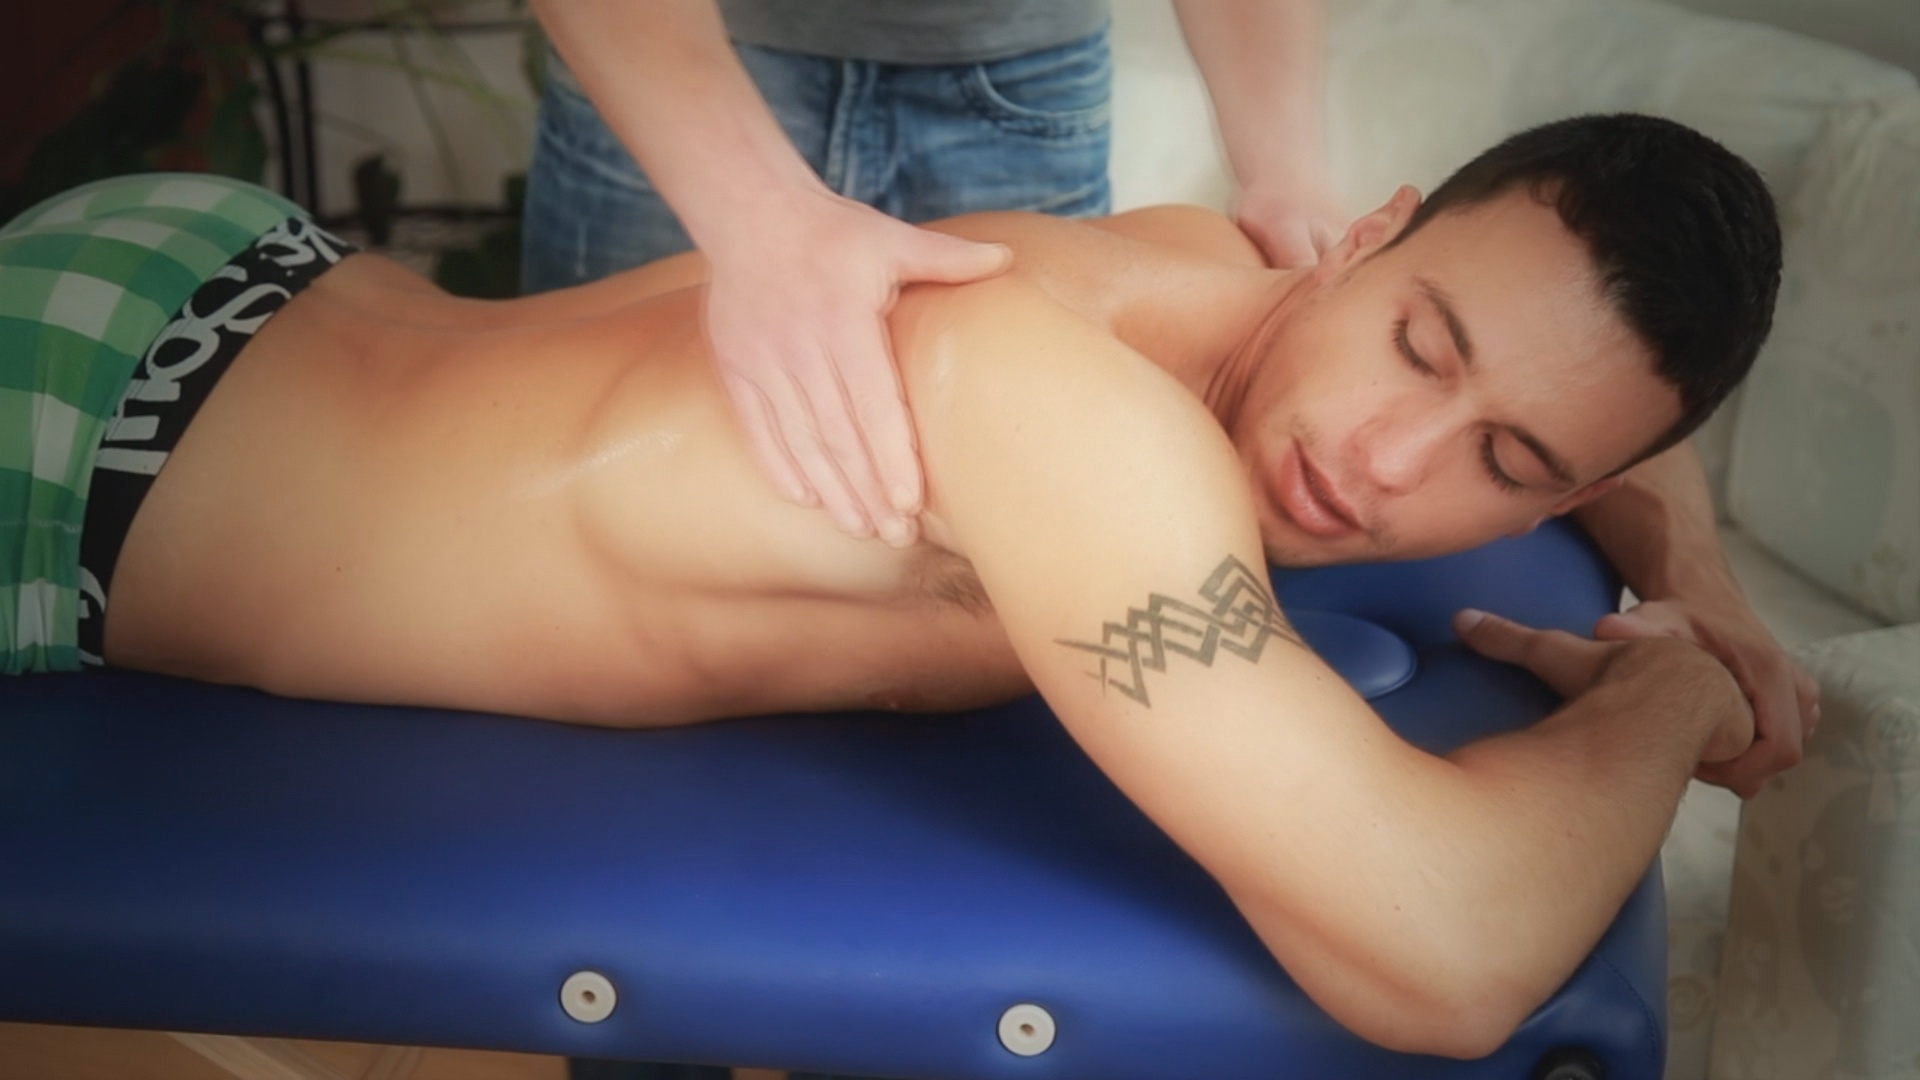 This wyoming erotic massages